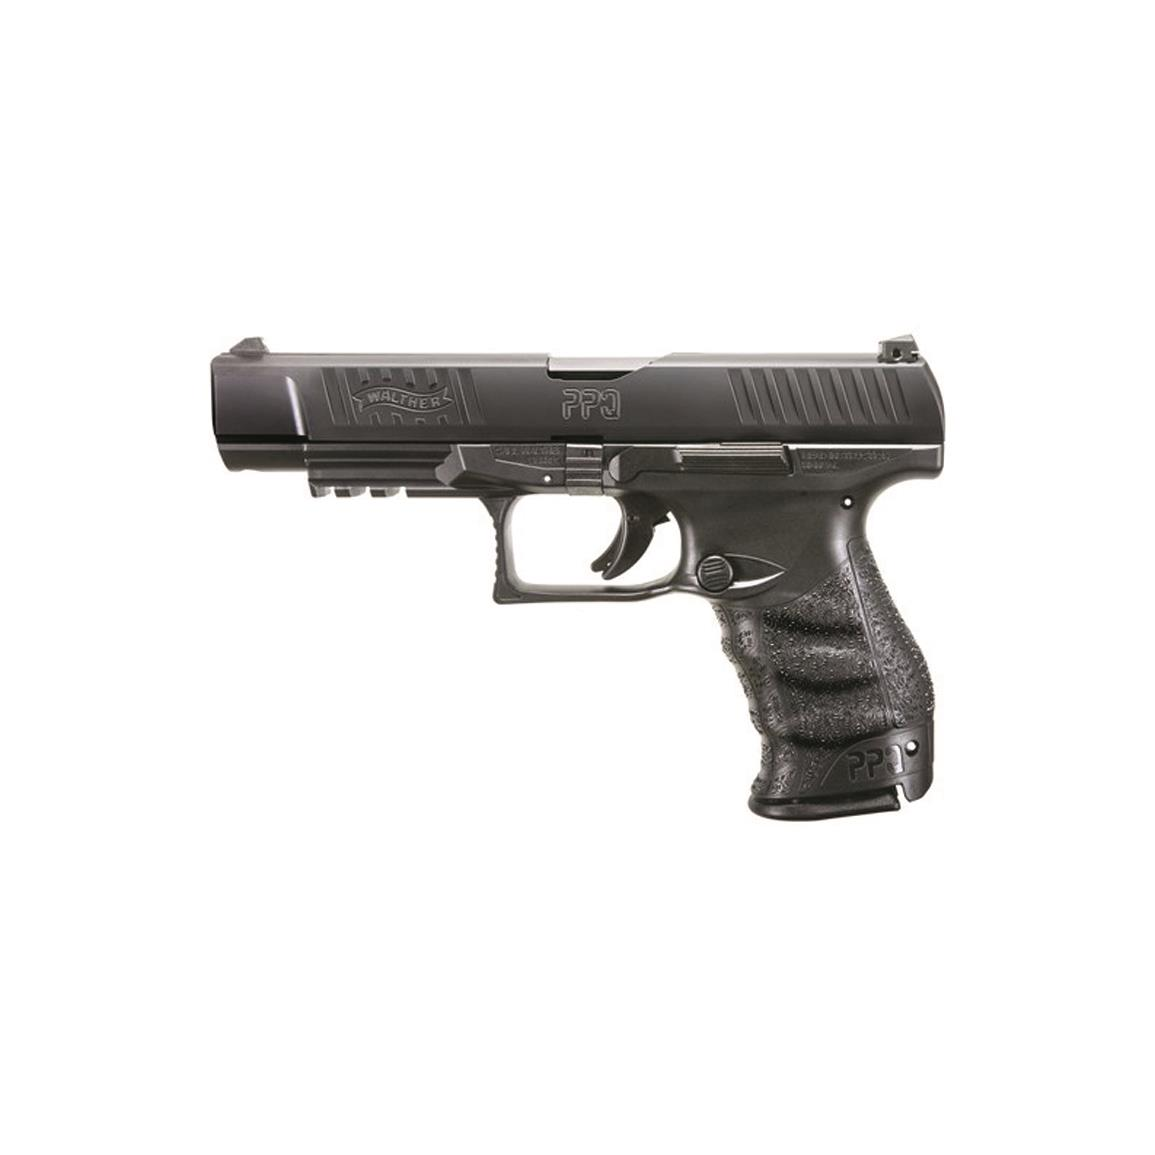 "Walther PPQ M2 5"" Standard, Semi-Automatic, 9mm, 5"" Barrel, 10+1 Rounds"